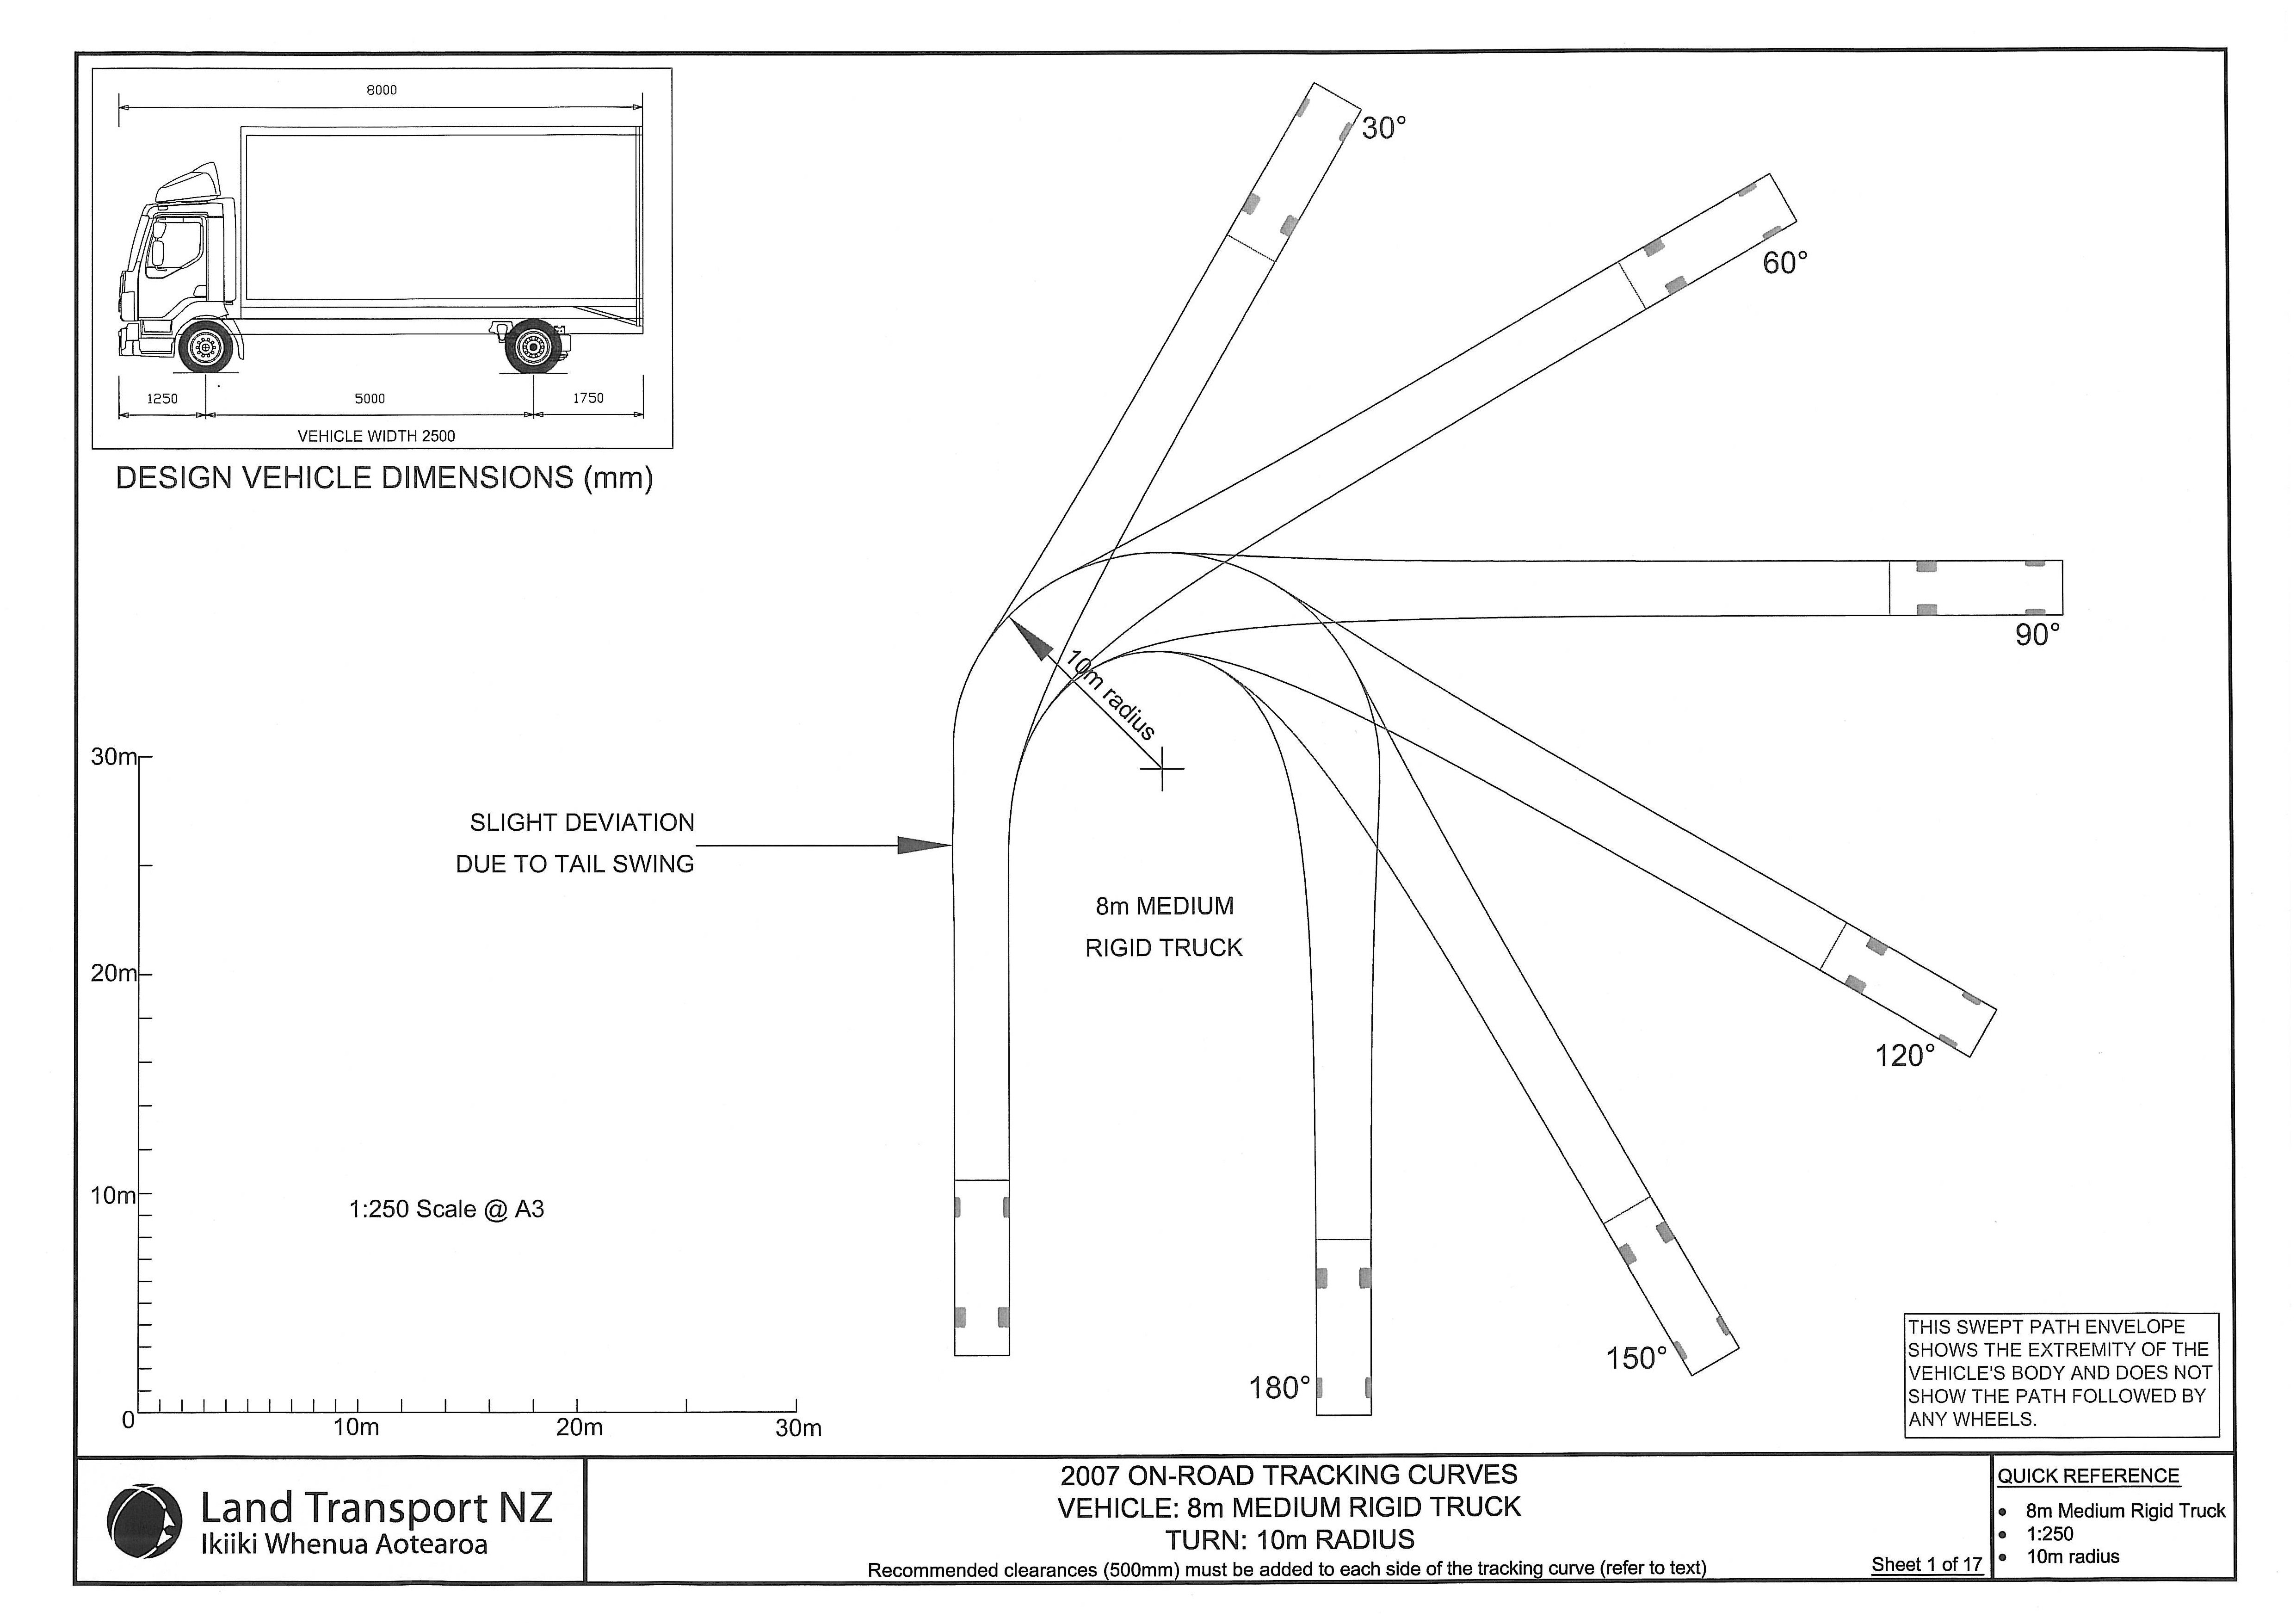 Rts 18 nz transport agency for Vehicle swept path templates